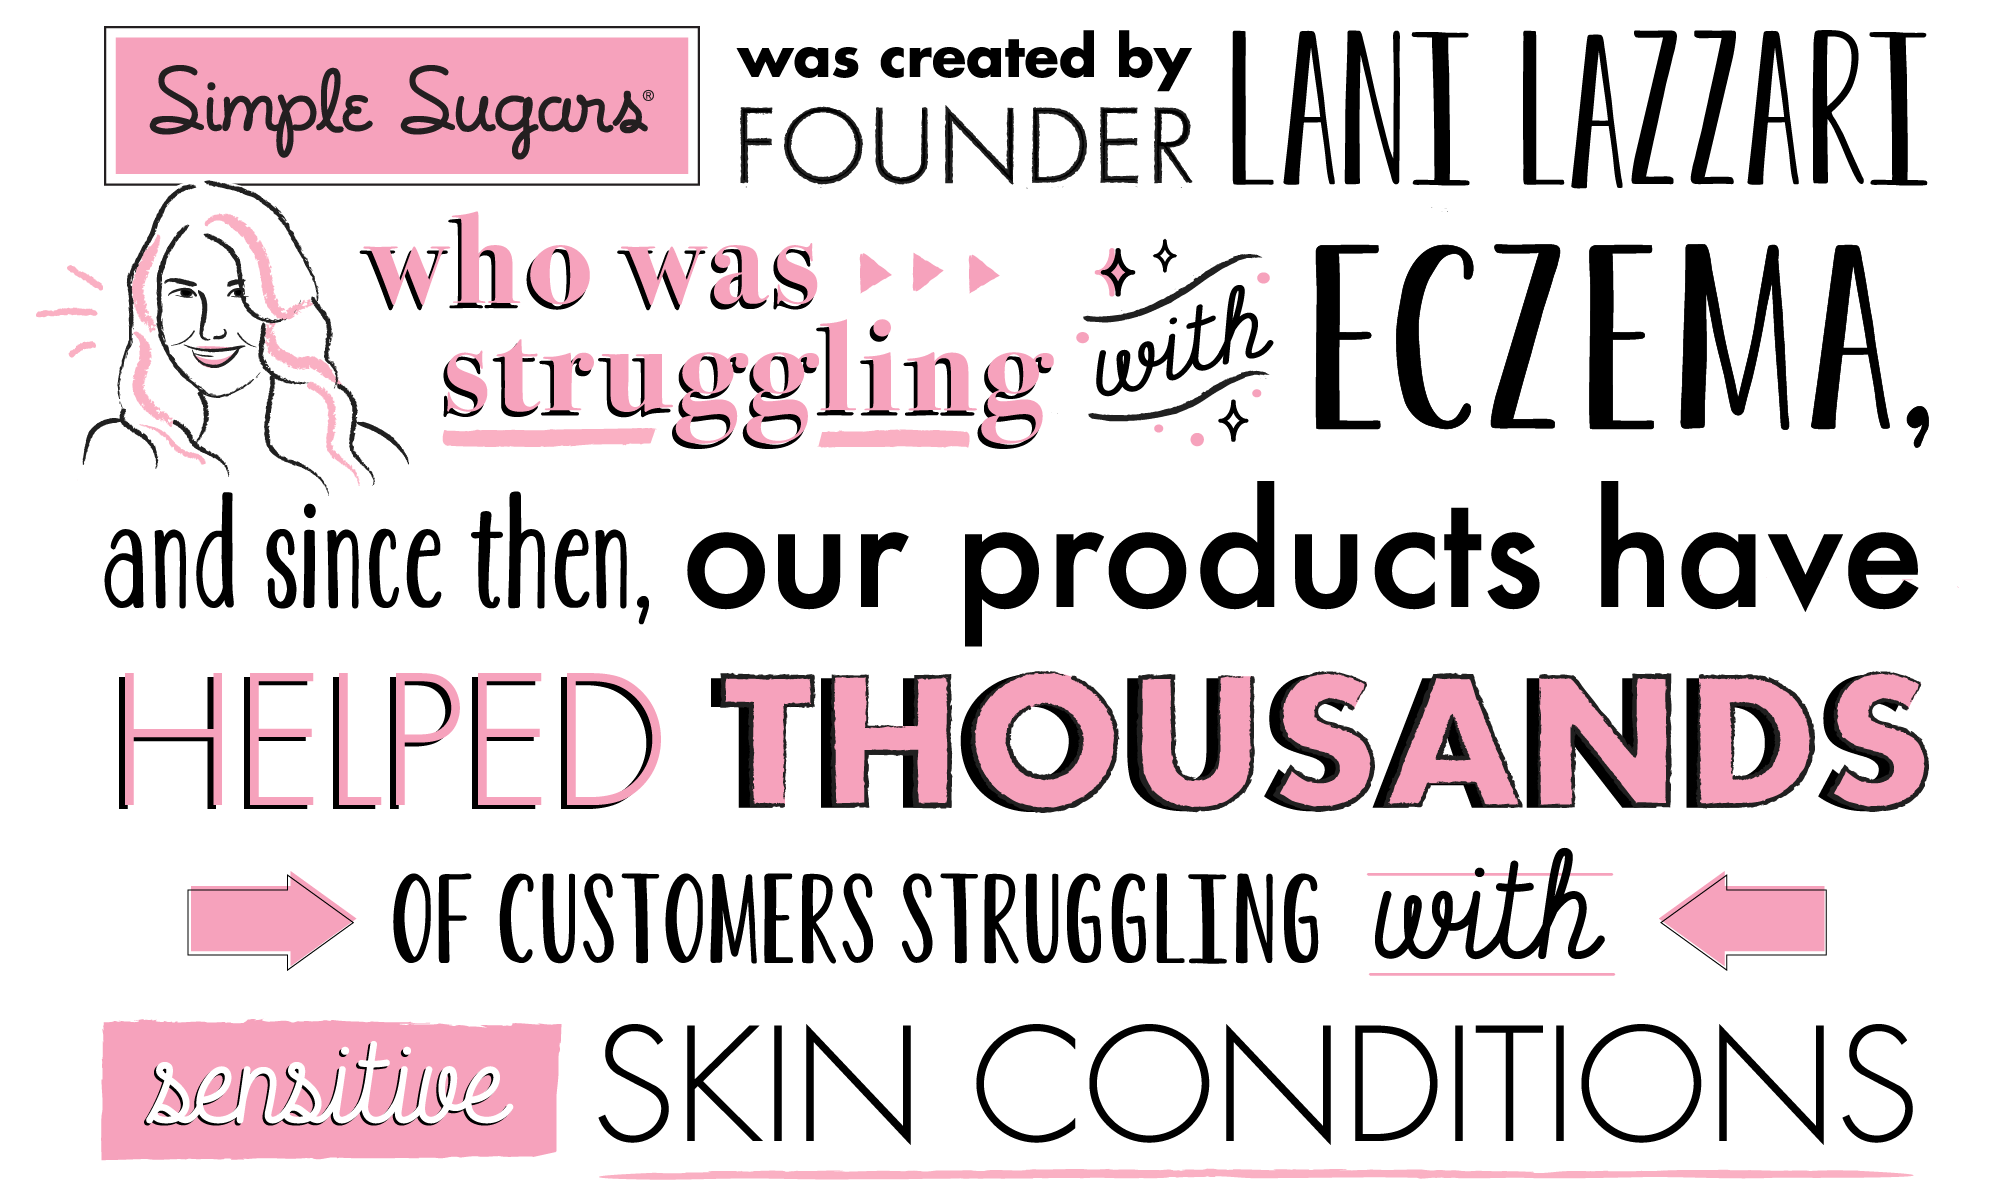 Simple Sugars was created by founder Lani Lazzari, who was struggling with eczema, and since then our products have helped thousands of customers struggling with sensitive skin conditions.